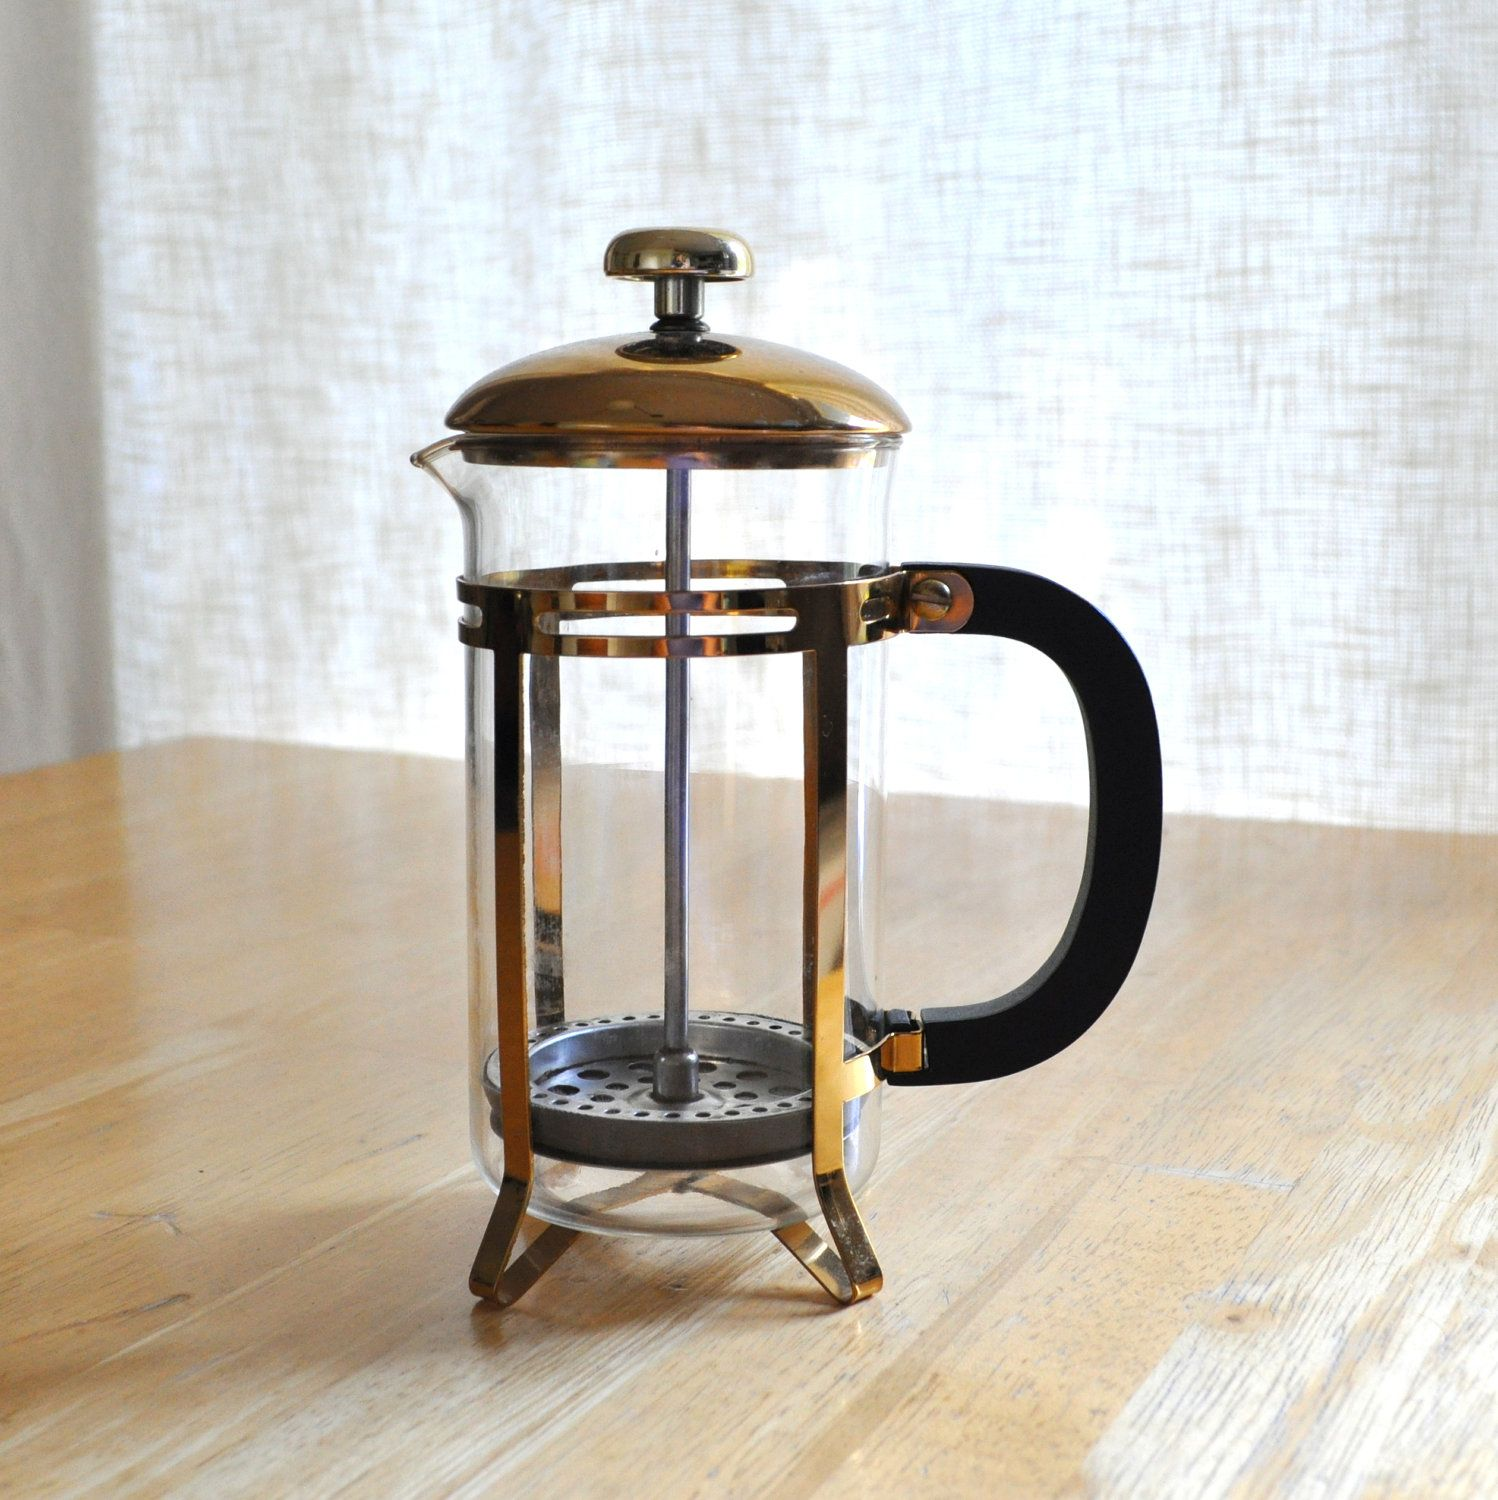 Vintage french press coffee maker with original brochure